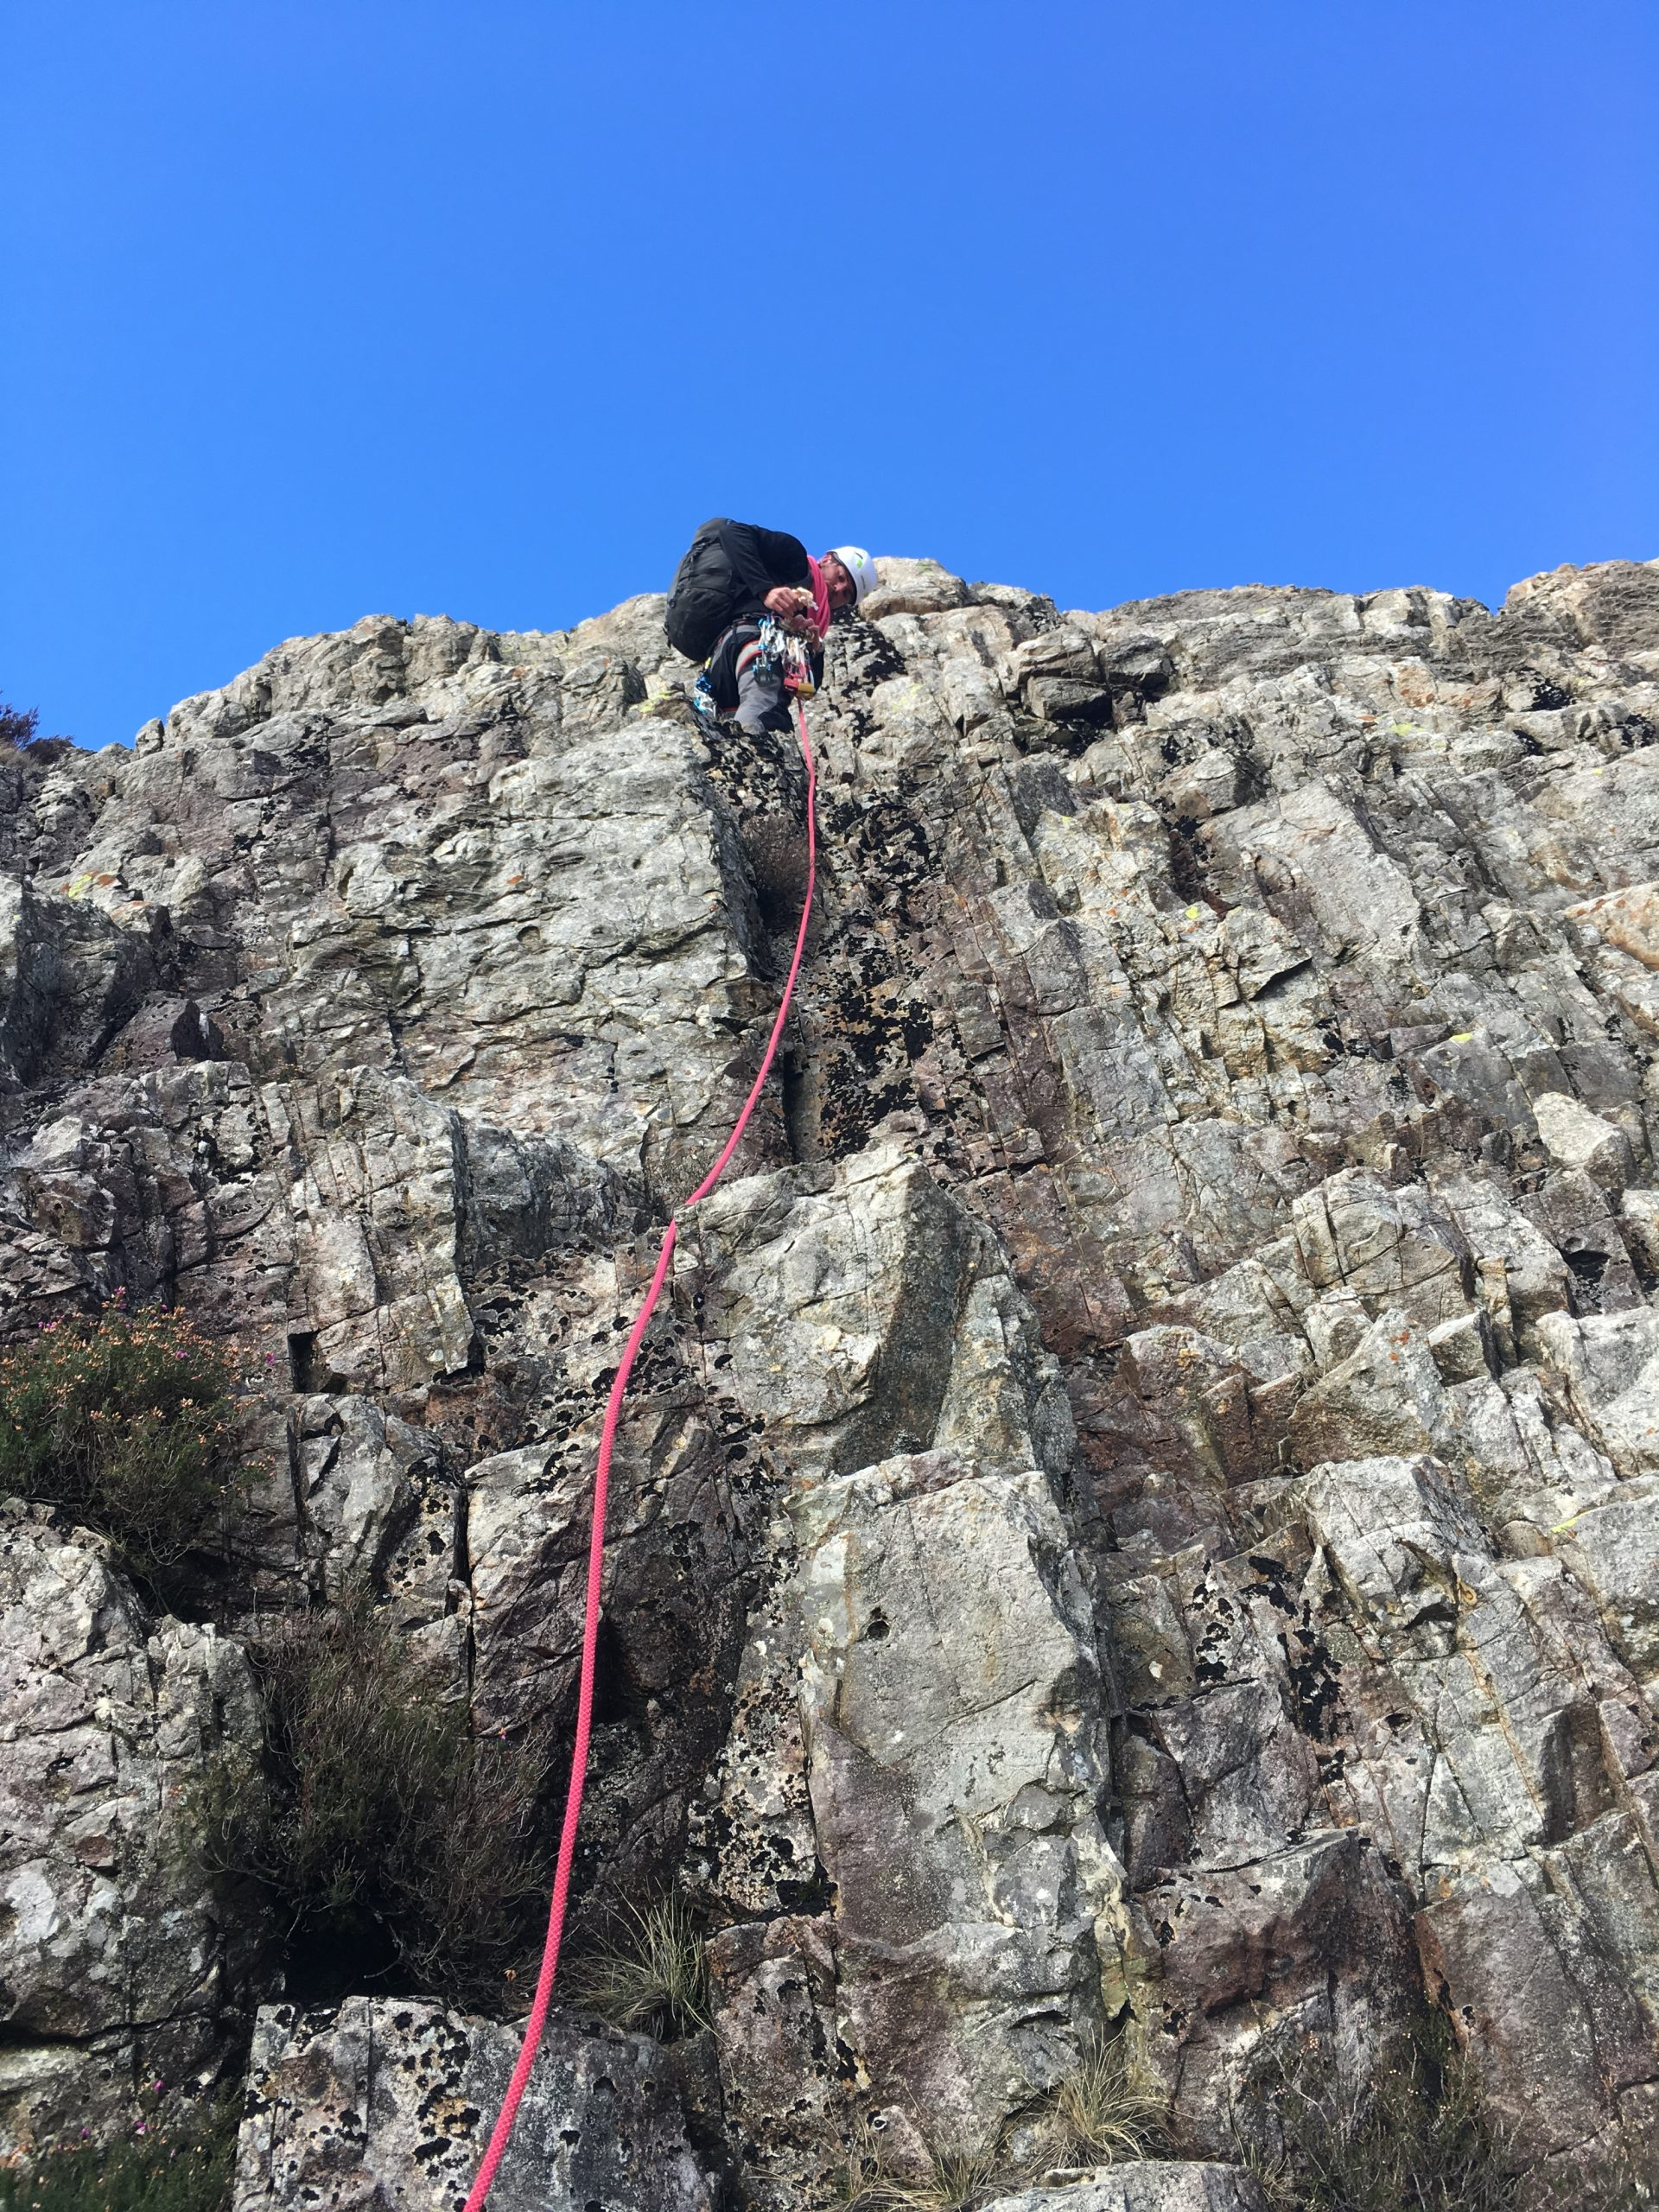 A mountaineer looks down from high up on a rock face while he learns to lead scrambles using a rope on this scrambling course in the Lake District